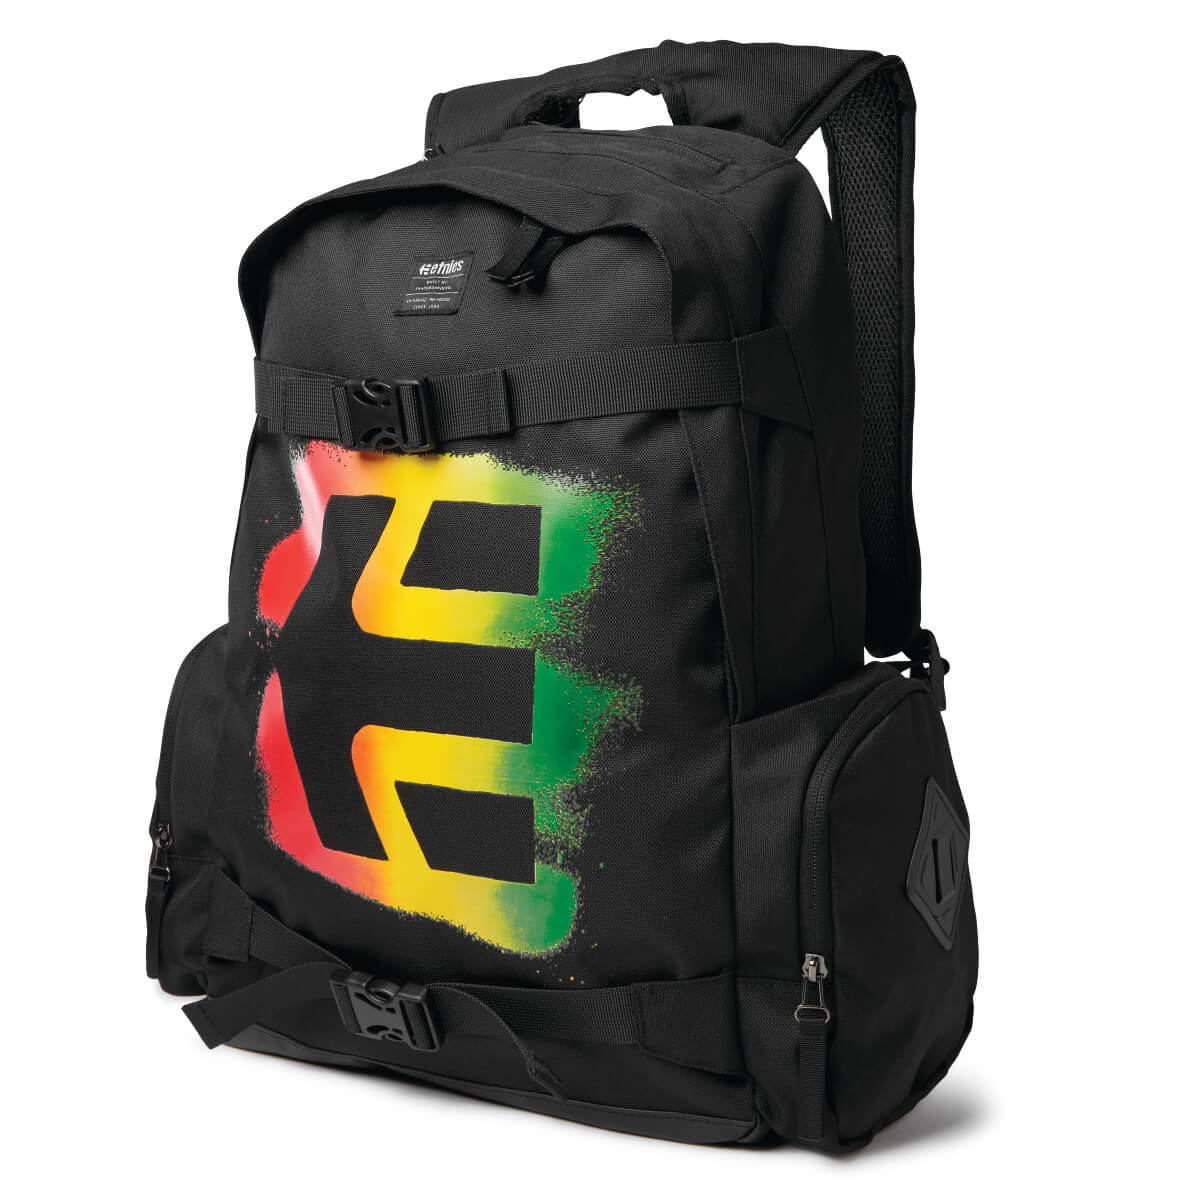 Рюкзак для скейта ETNIES Essential Skate Bag (Black)